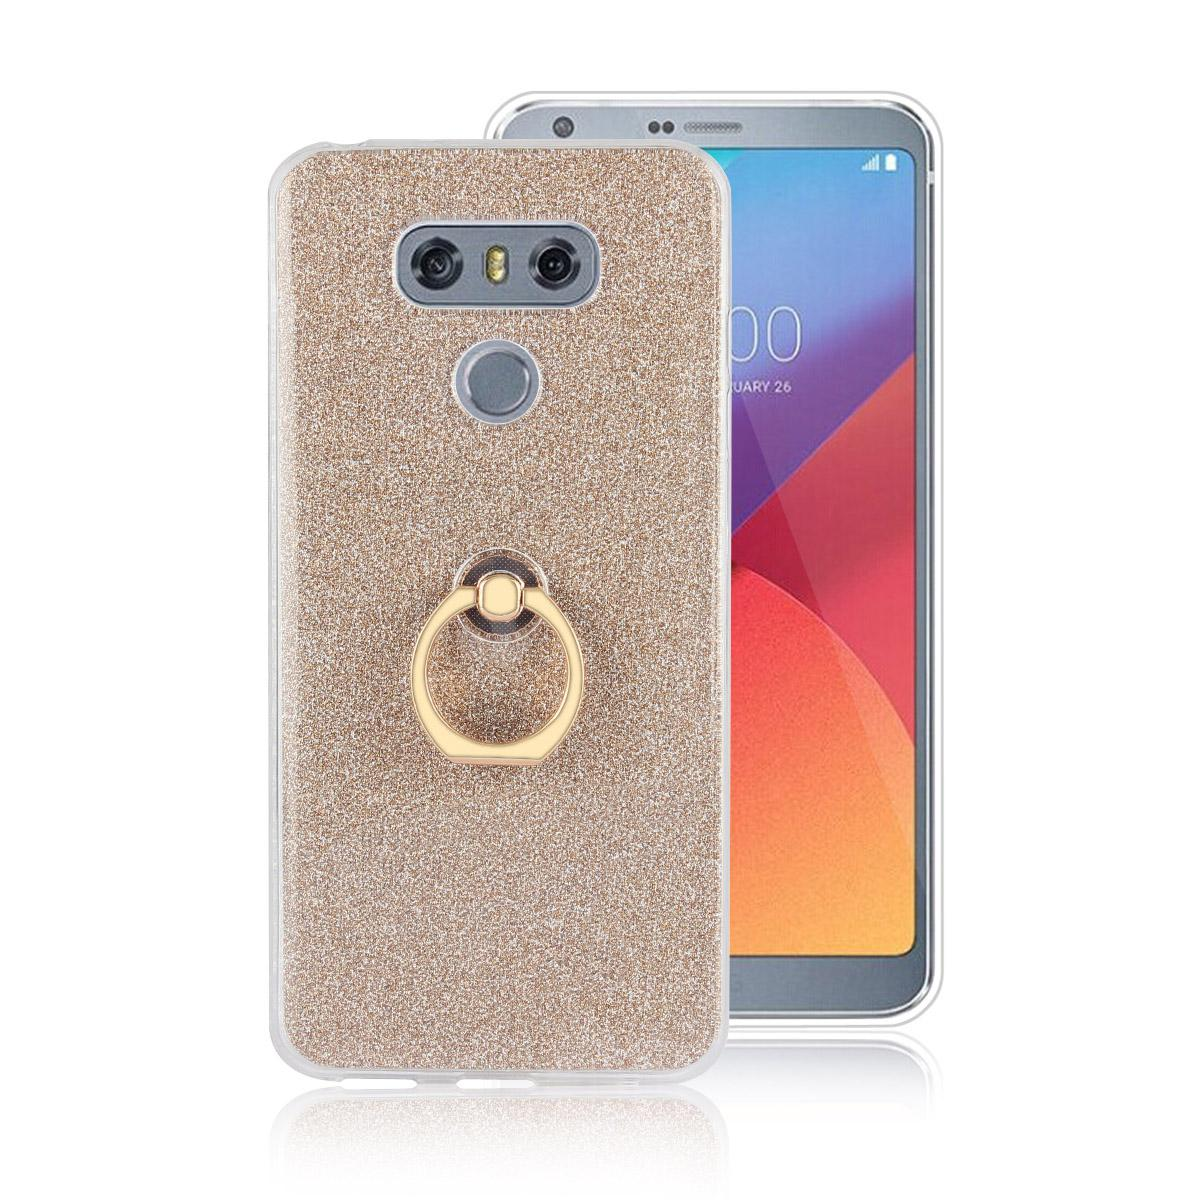 9e8f4d37e74afe TPU Soft Shell Case For LG G5 G6 With Ring Kickstand Stand 2 In 1  Transparent & Flash Shimmering Powder For Women Leather Cell Phone Case  Unique Cell Phone ...